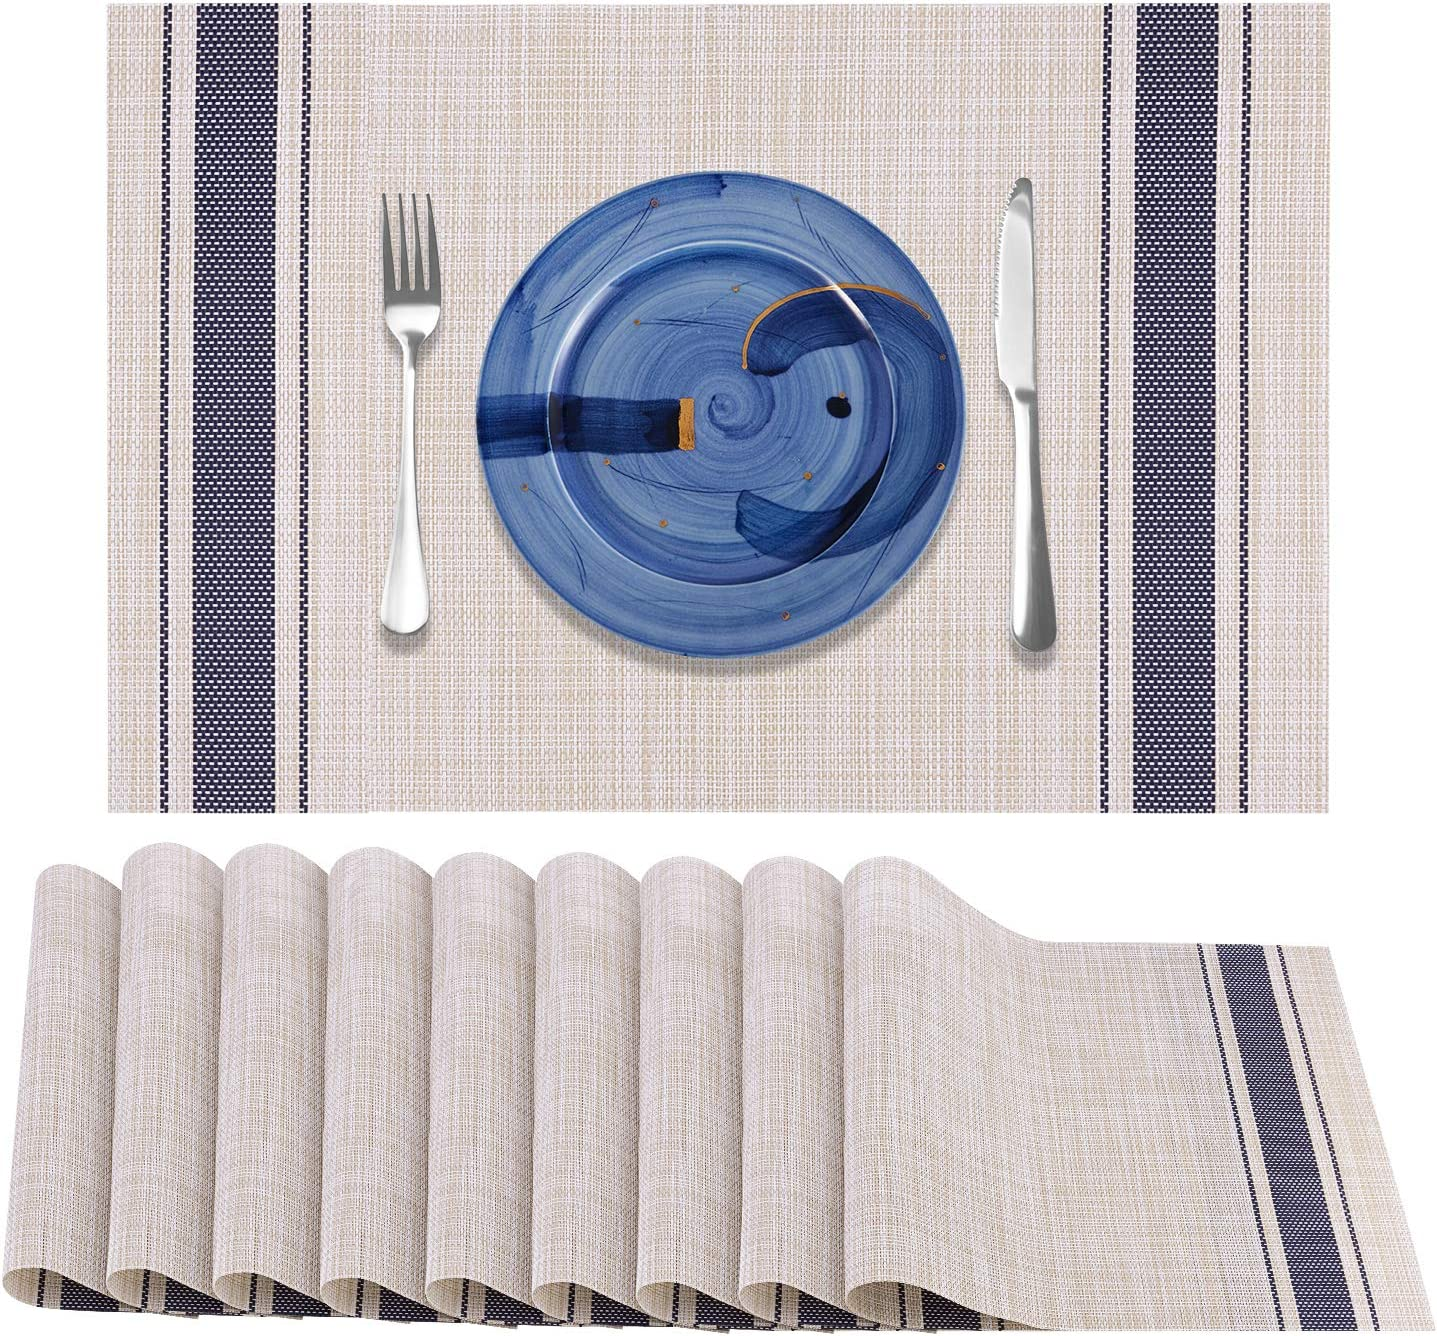 Awpeye Placemats Set of 10, Woven Vinyl Kitchen Table Place Mats, Heat Resistant Washable Placemat